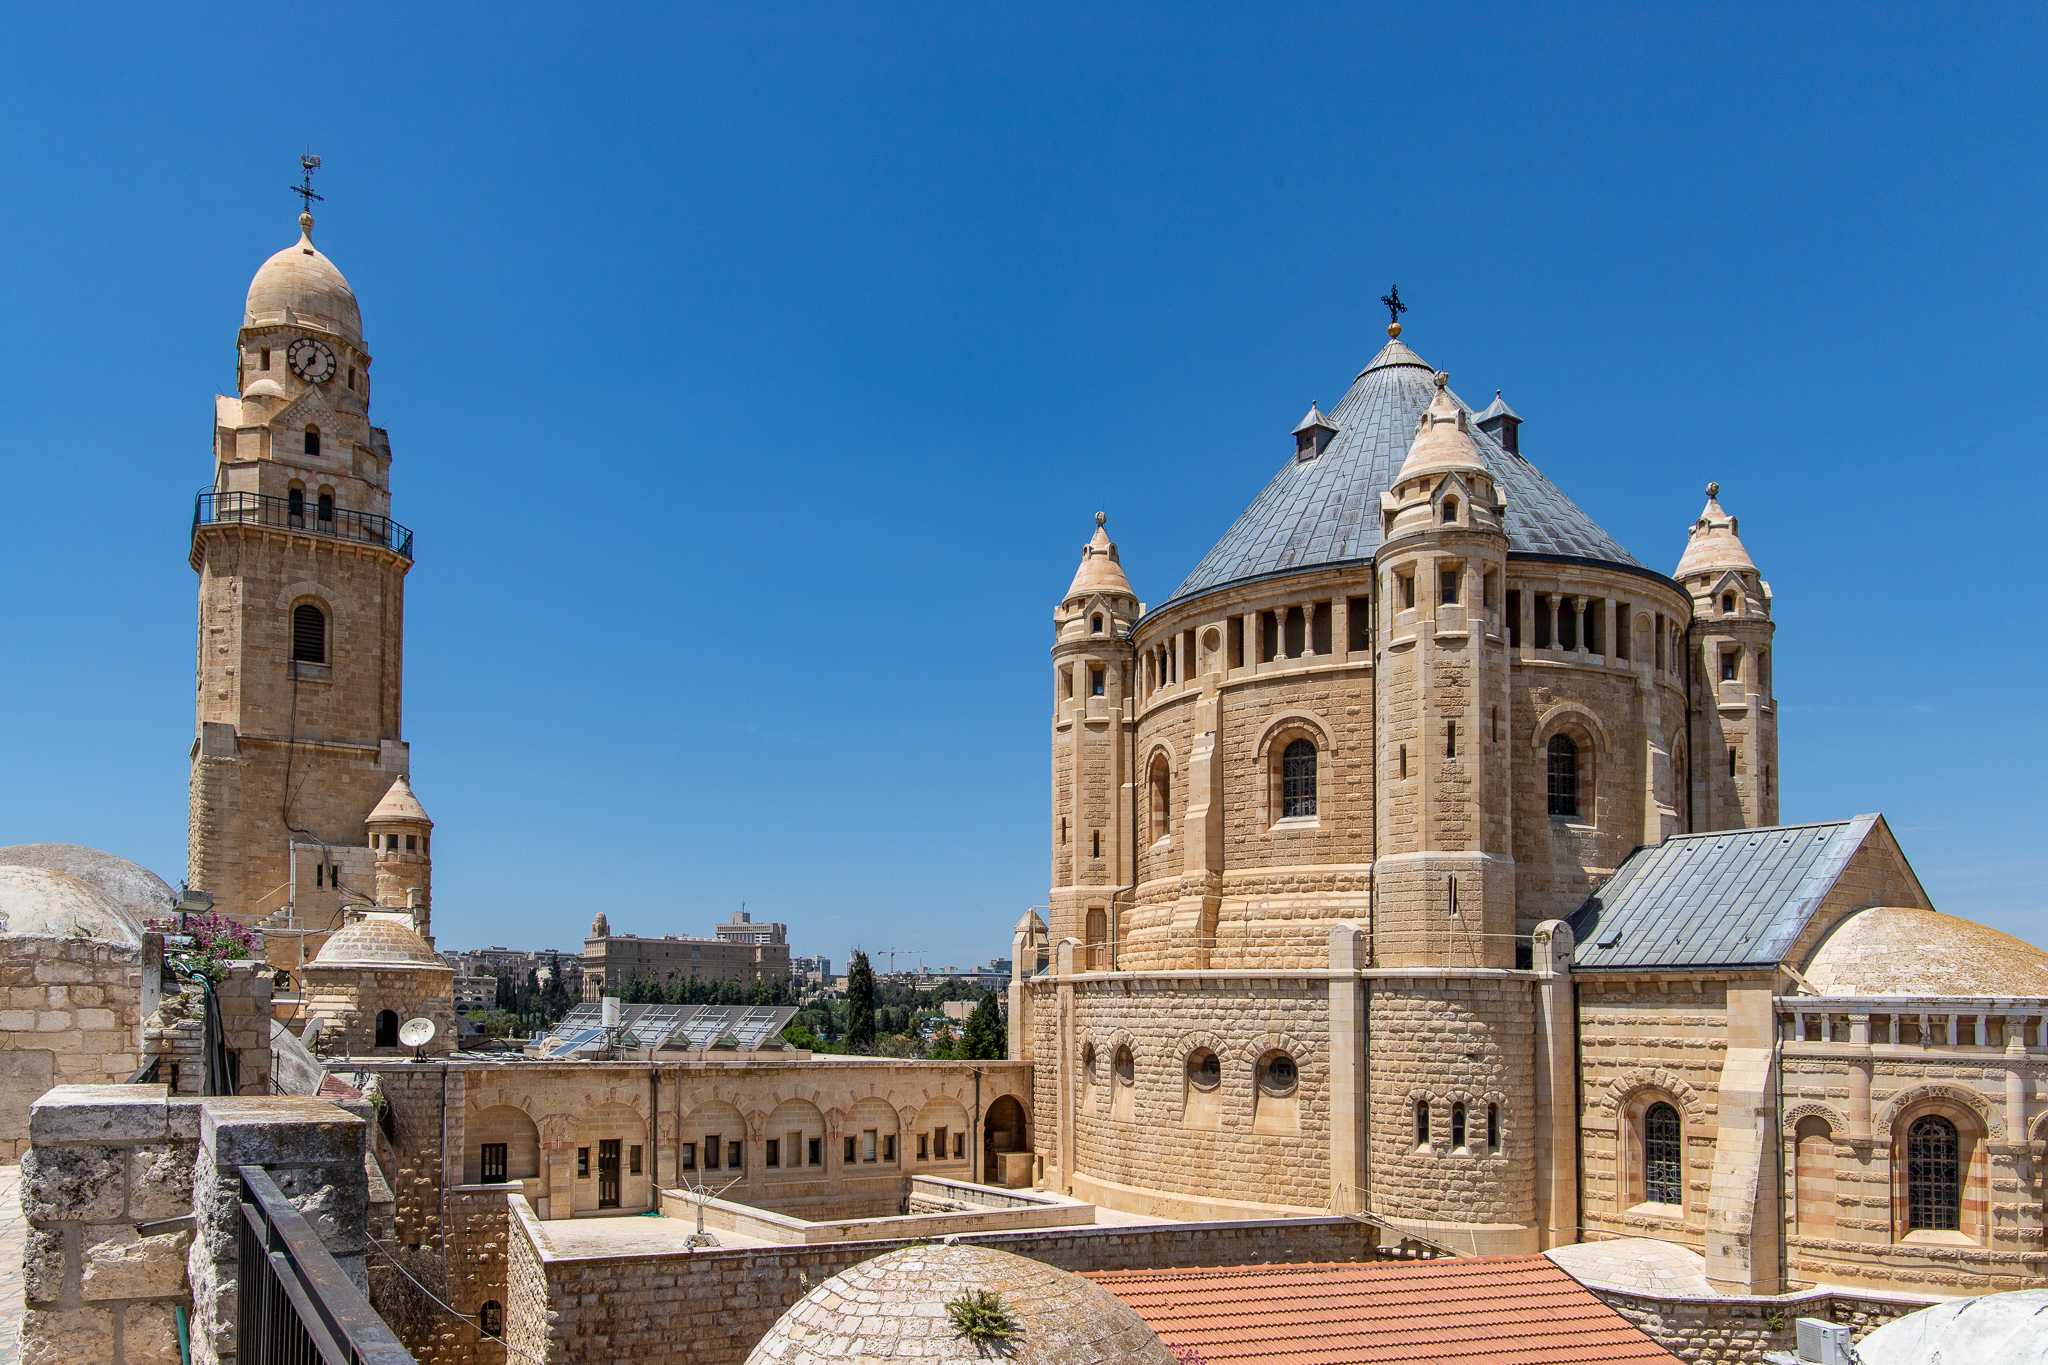 Abbey of the Dormition seen from the roof of the Cenacle